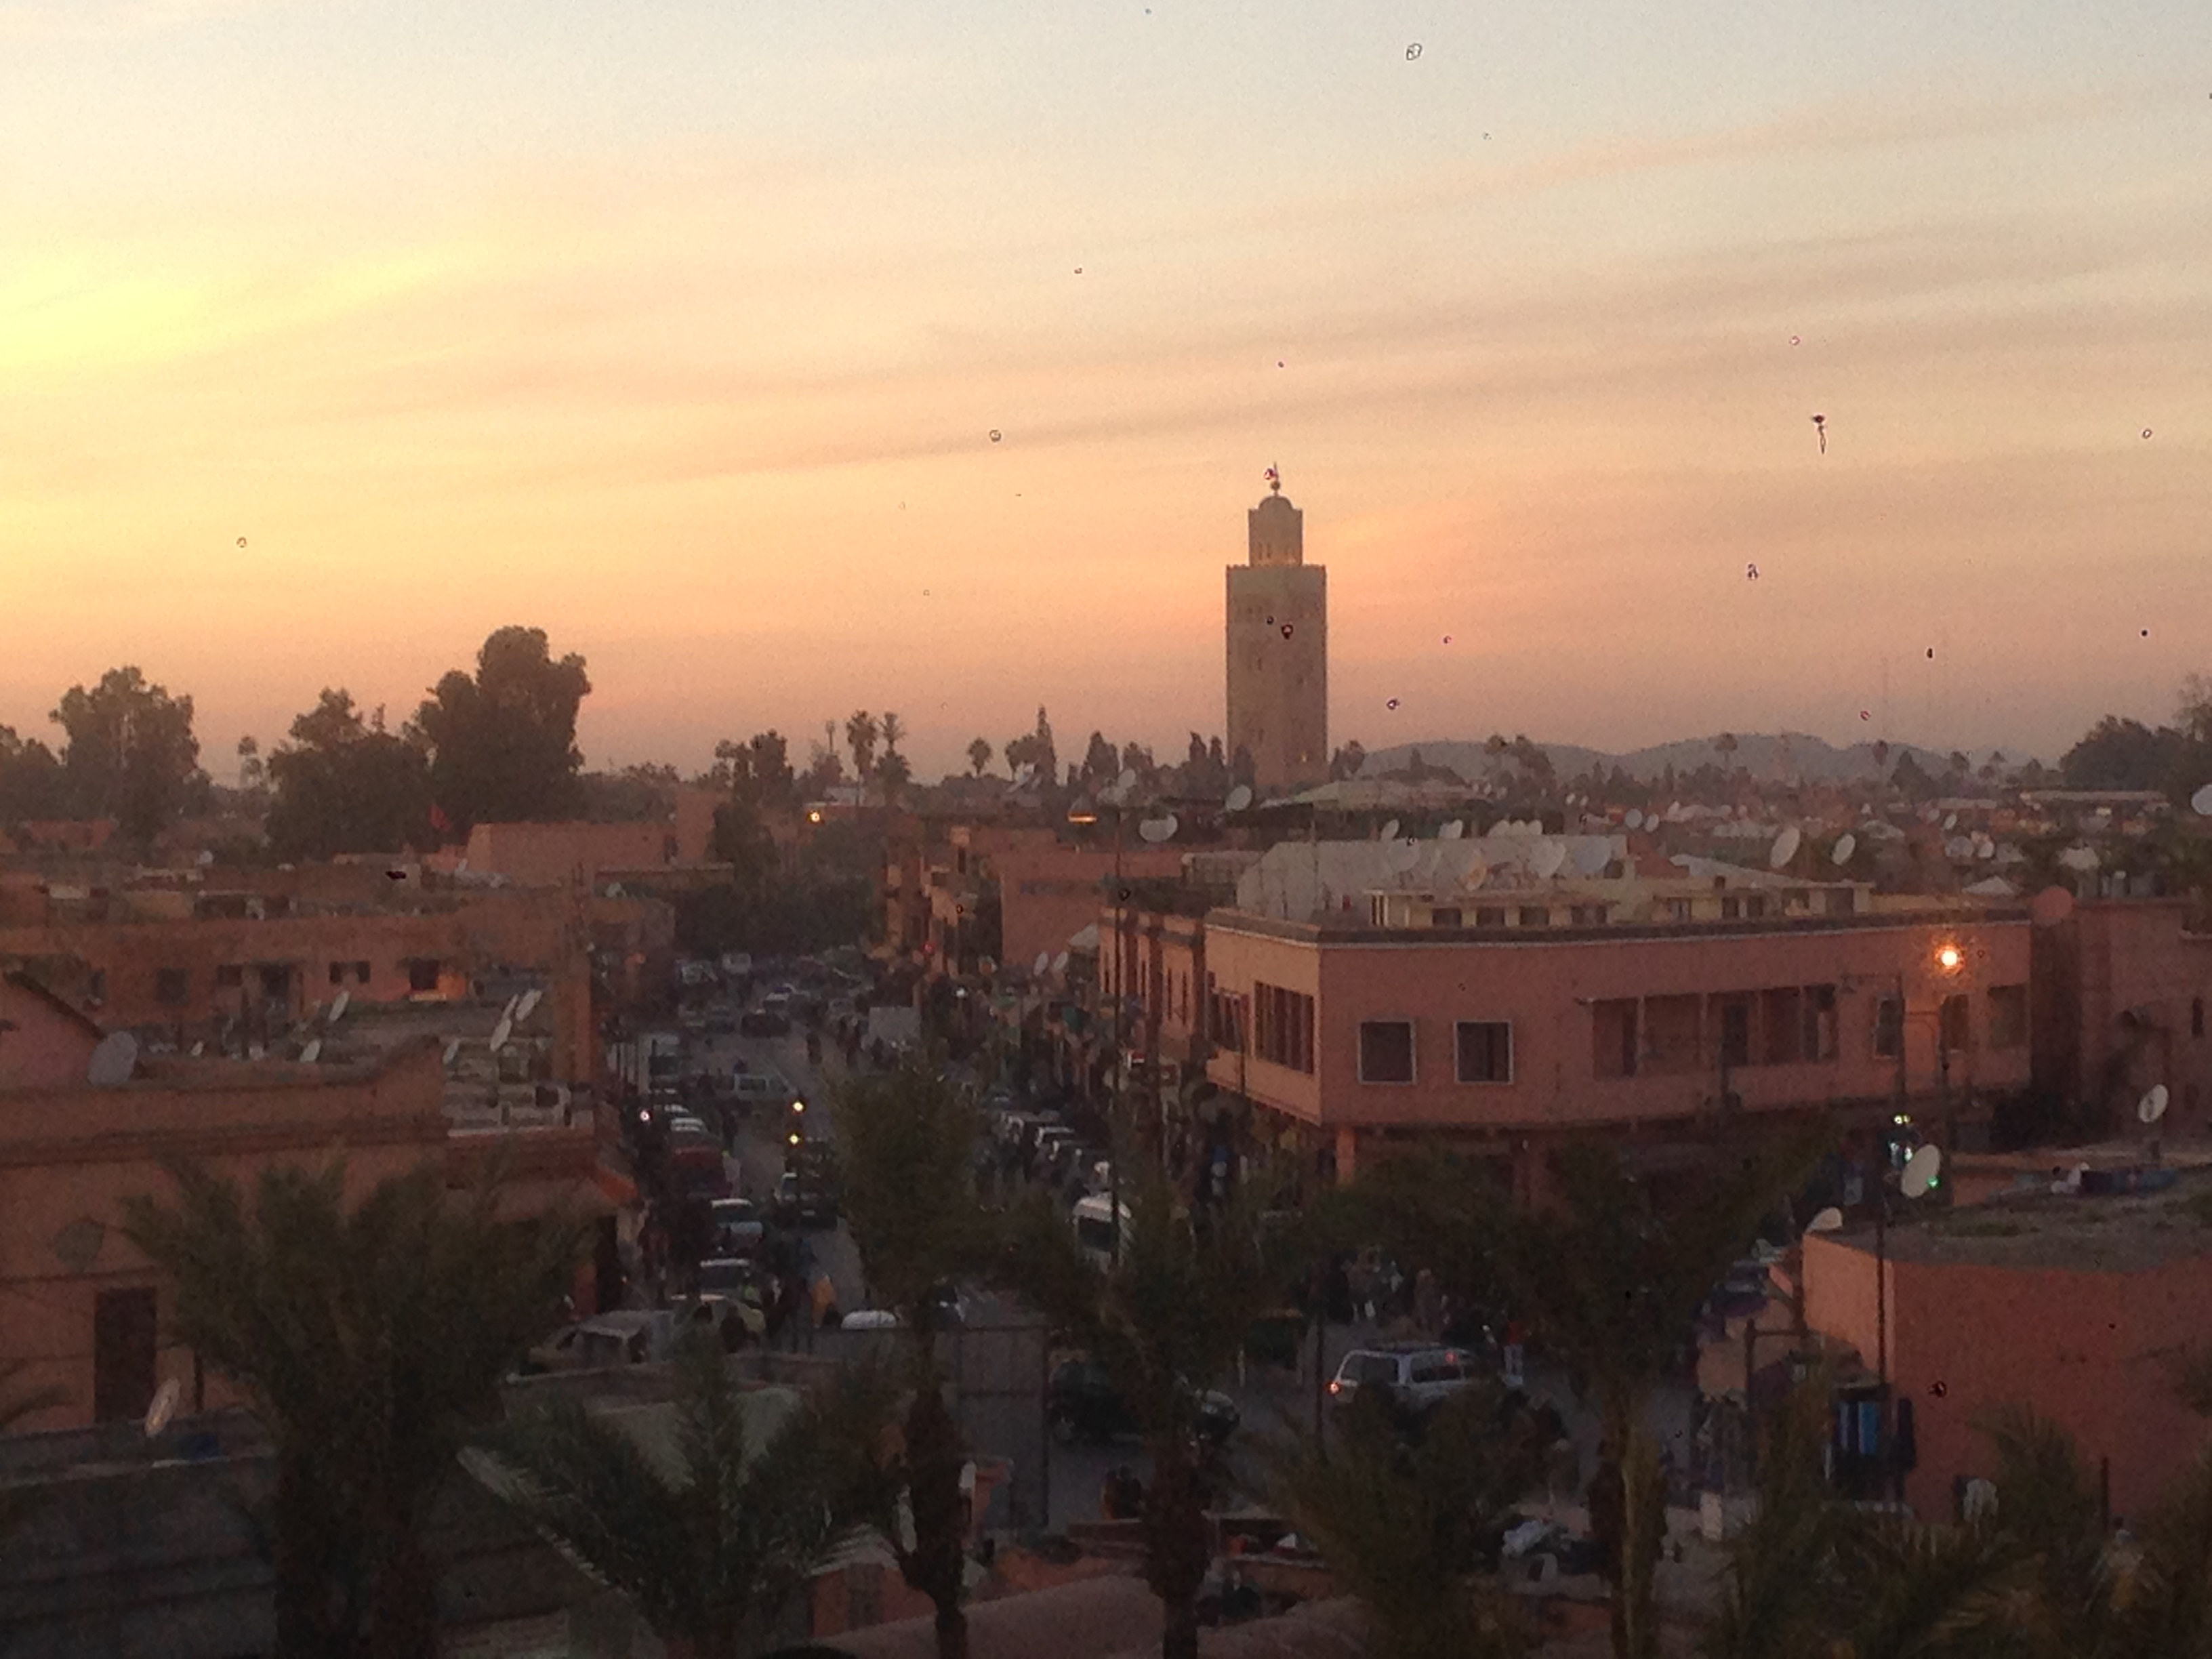 Abendstimmung in Marrakech